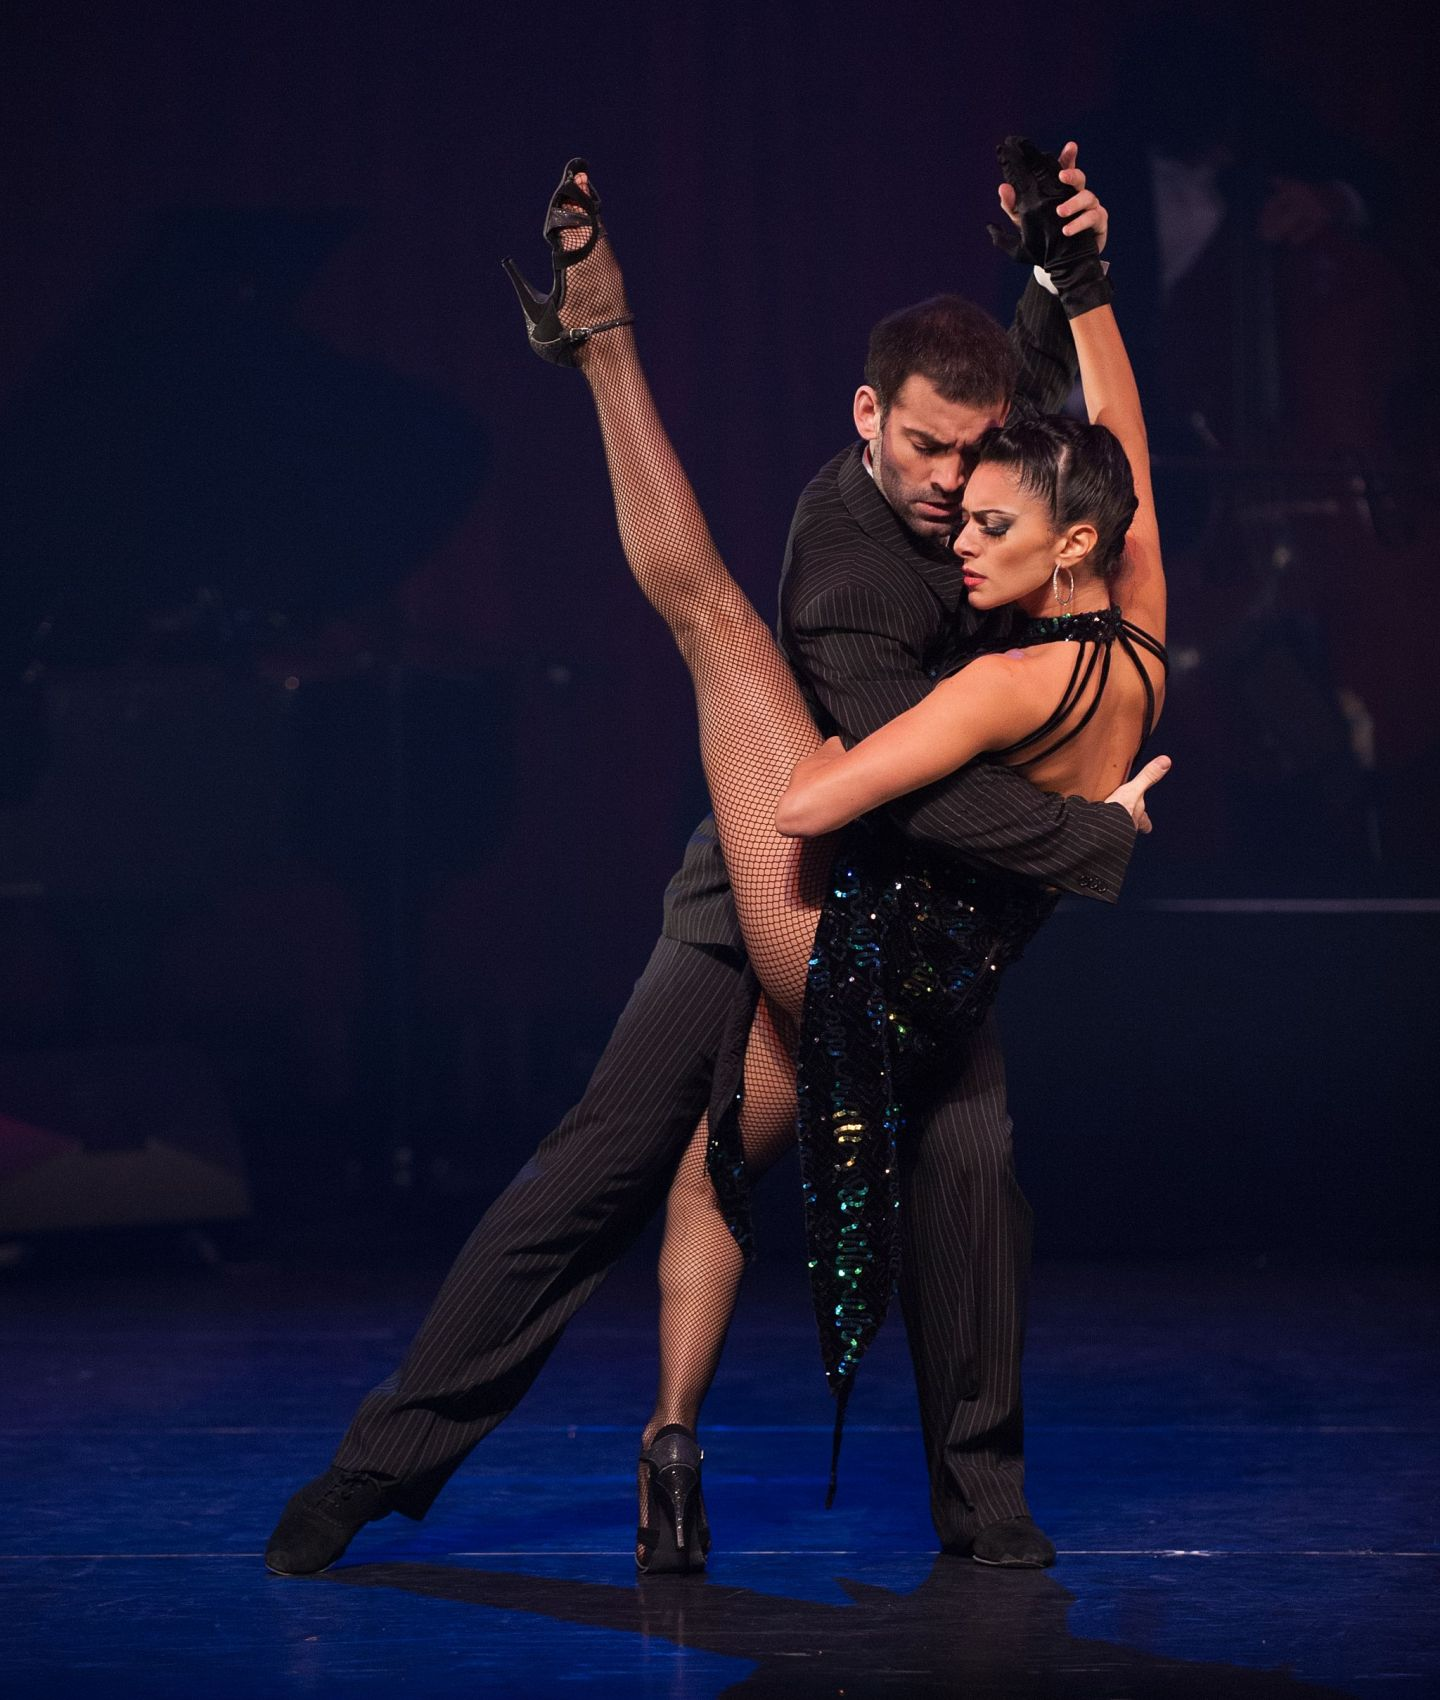 REVIEW: ★★★★ Tango Fire, The Peacock Theatre